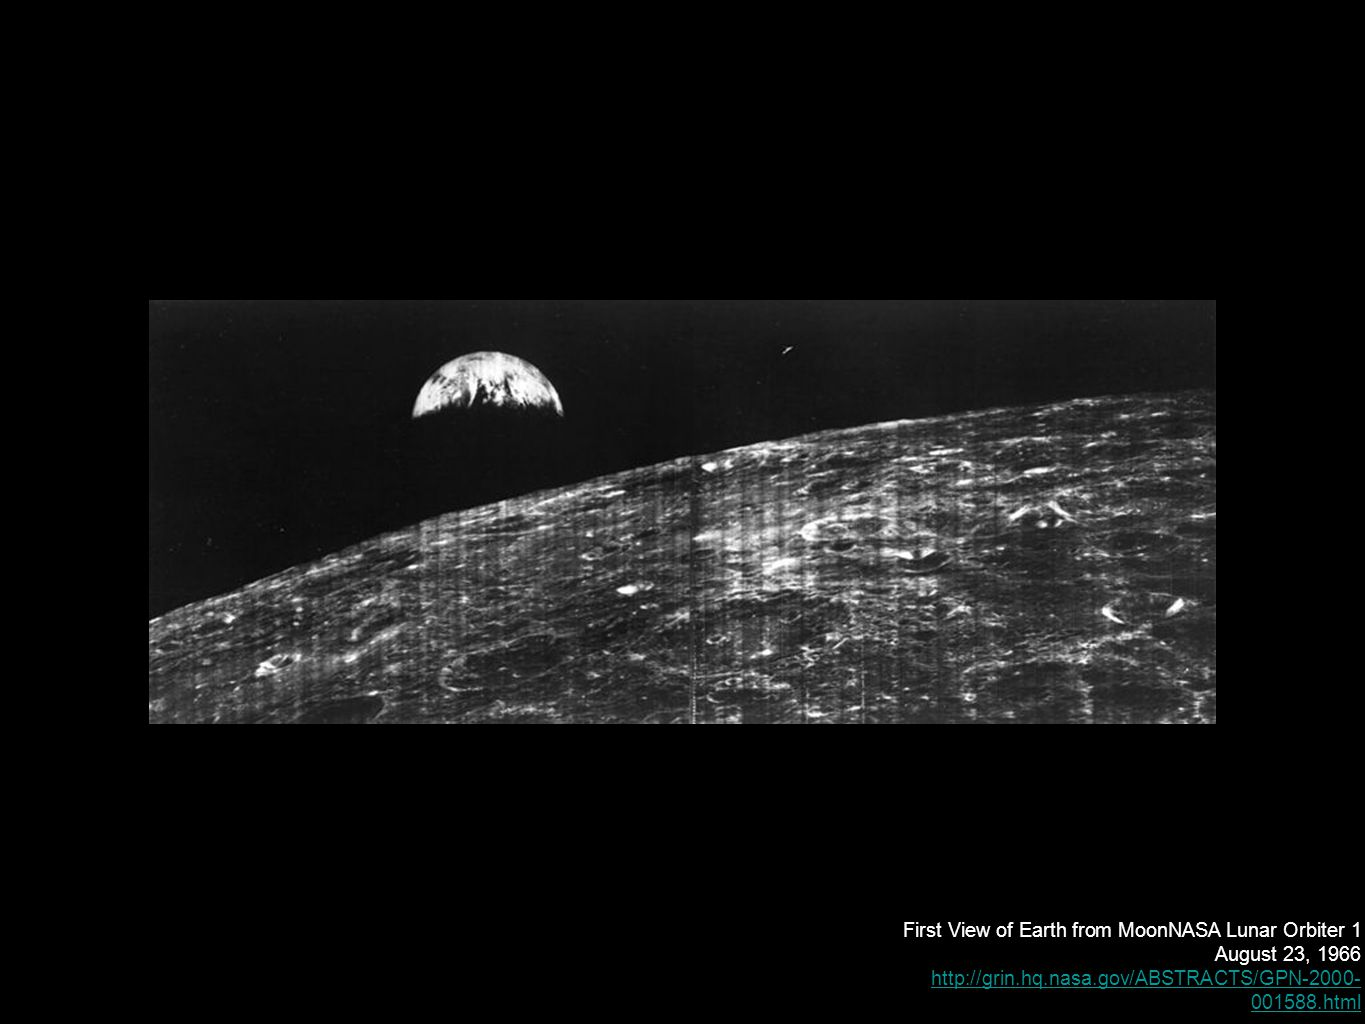 First View of Earth from MoonNASA Lunar Orbiter 1 August 23, 1966 http://grin.hq.nasa.gov/ABSTRACTS/GPN-2000- 001588.html